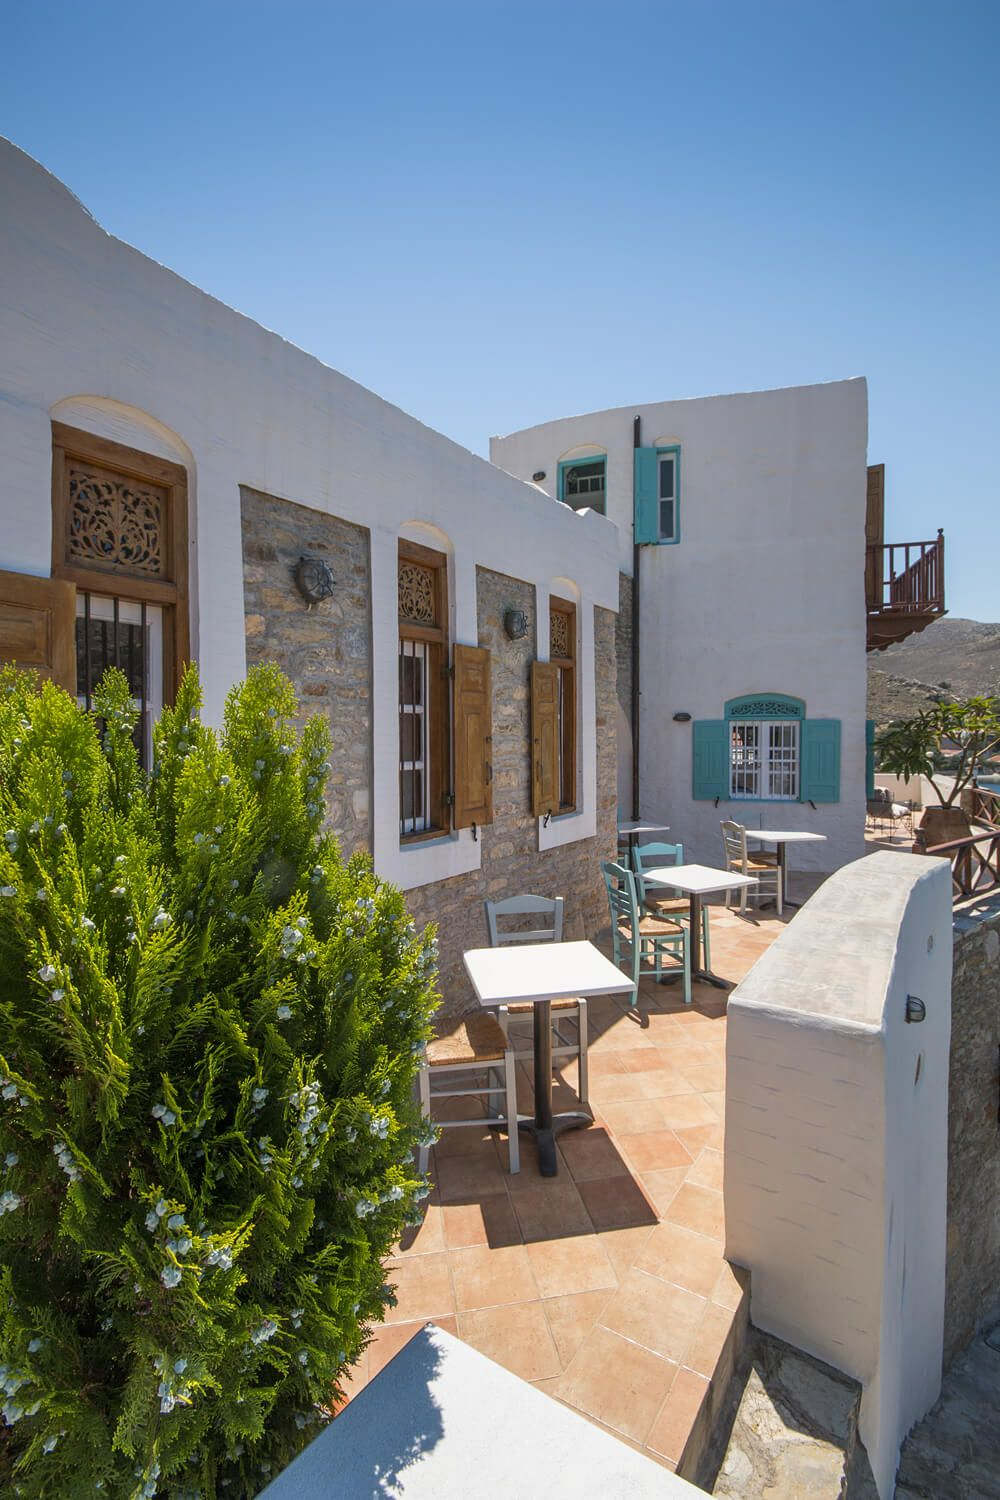 Hotel Emporio Symi Greece Book Through I Escape This Idyllic Greek Islands B Has 6 Rooms And A Lush Waterfront Garden